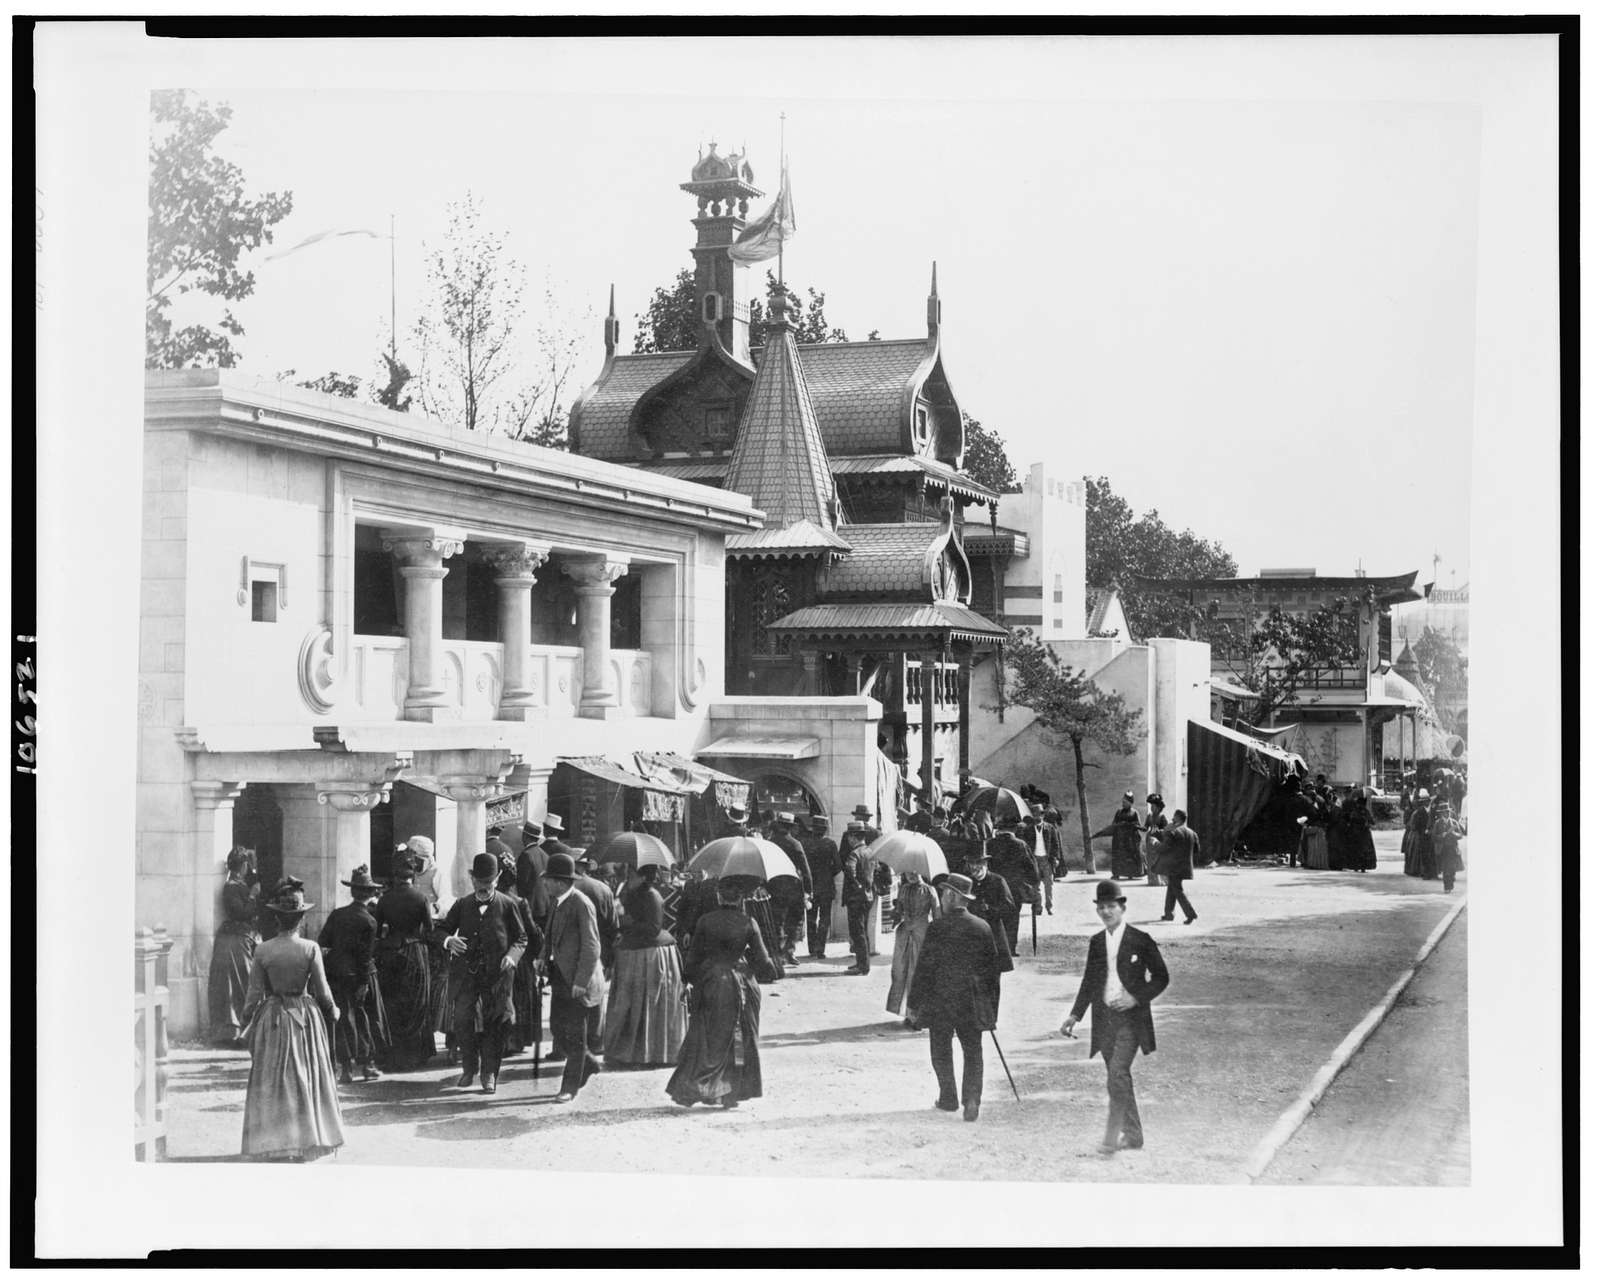 [Byzantine house, Russian house, Arab house, and Japanese house in History of Habitation exhibit, Paris Exposition, 1889]